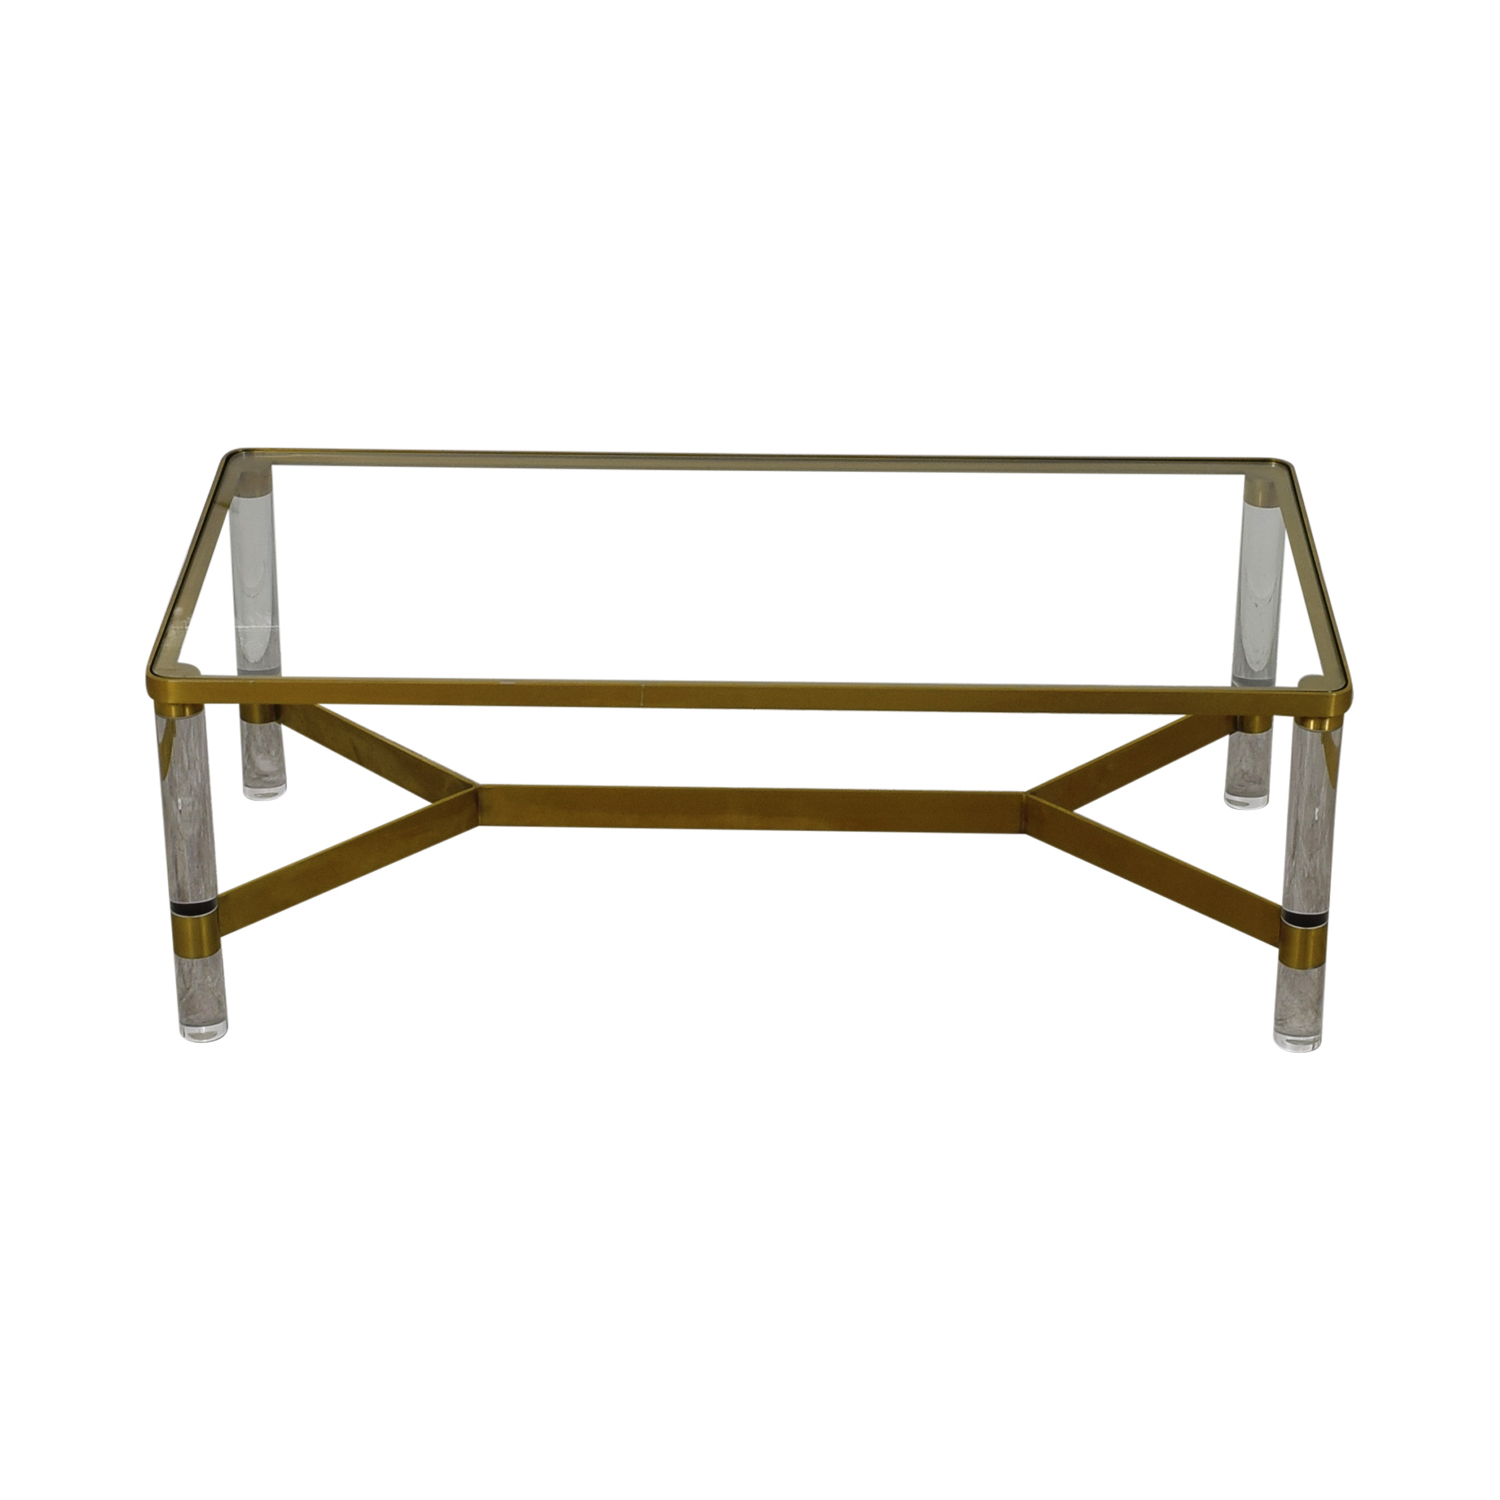 [%72% Off – Anthropologie Anthropologie Oscarine Glass Acrylic & Brass With Regard To Most Recent Acrylic Glass And Brass Coffee Tables|Acrylic Glass And Brass Coffee Tables With Regard To Popular 72% Off – Anthropologie Anthropologie Oscarine Glass Acrylic & Brass|Favorite Acrylic Glass And Brass Coffee Tables Throughout 72% Off – Anthropologie Anthropologie Oscarine Glass Acrylic & Brass|Most Current 72% Off – Anthropologie Anthropologie Oscarine Glass Acrylic & Brass With Regard To Acrylic Glass And Brass Coffee Tables%] (View 2 of 20)